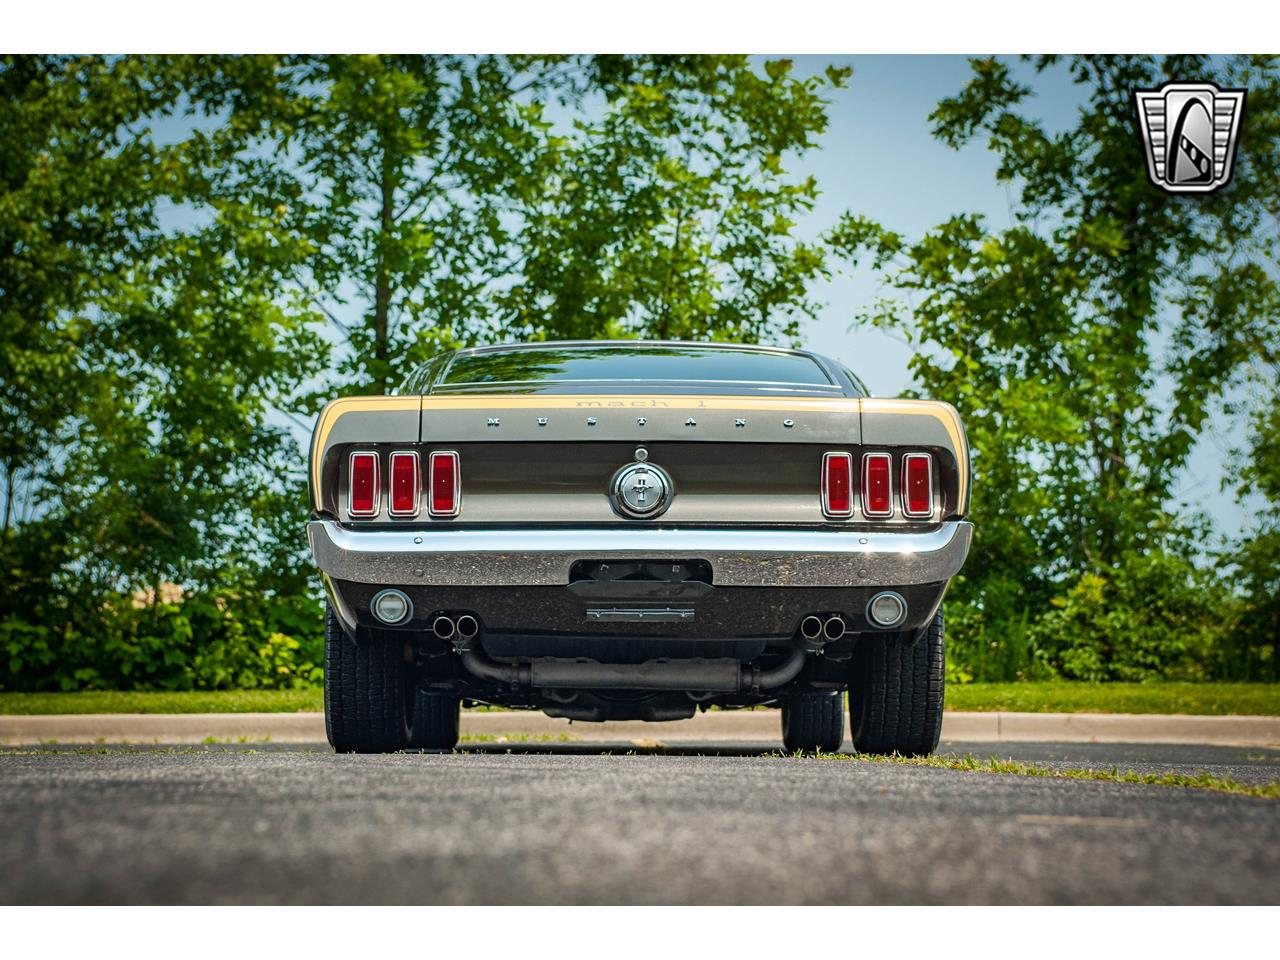 Large Picture of '69 Ford Mustang located in O'Fallon Illinois - $97,500.00 - QBA2